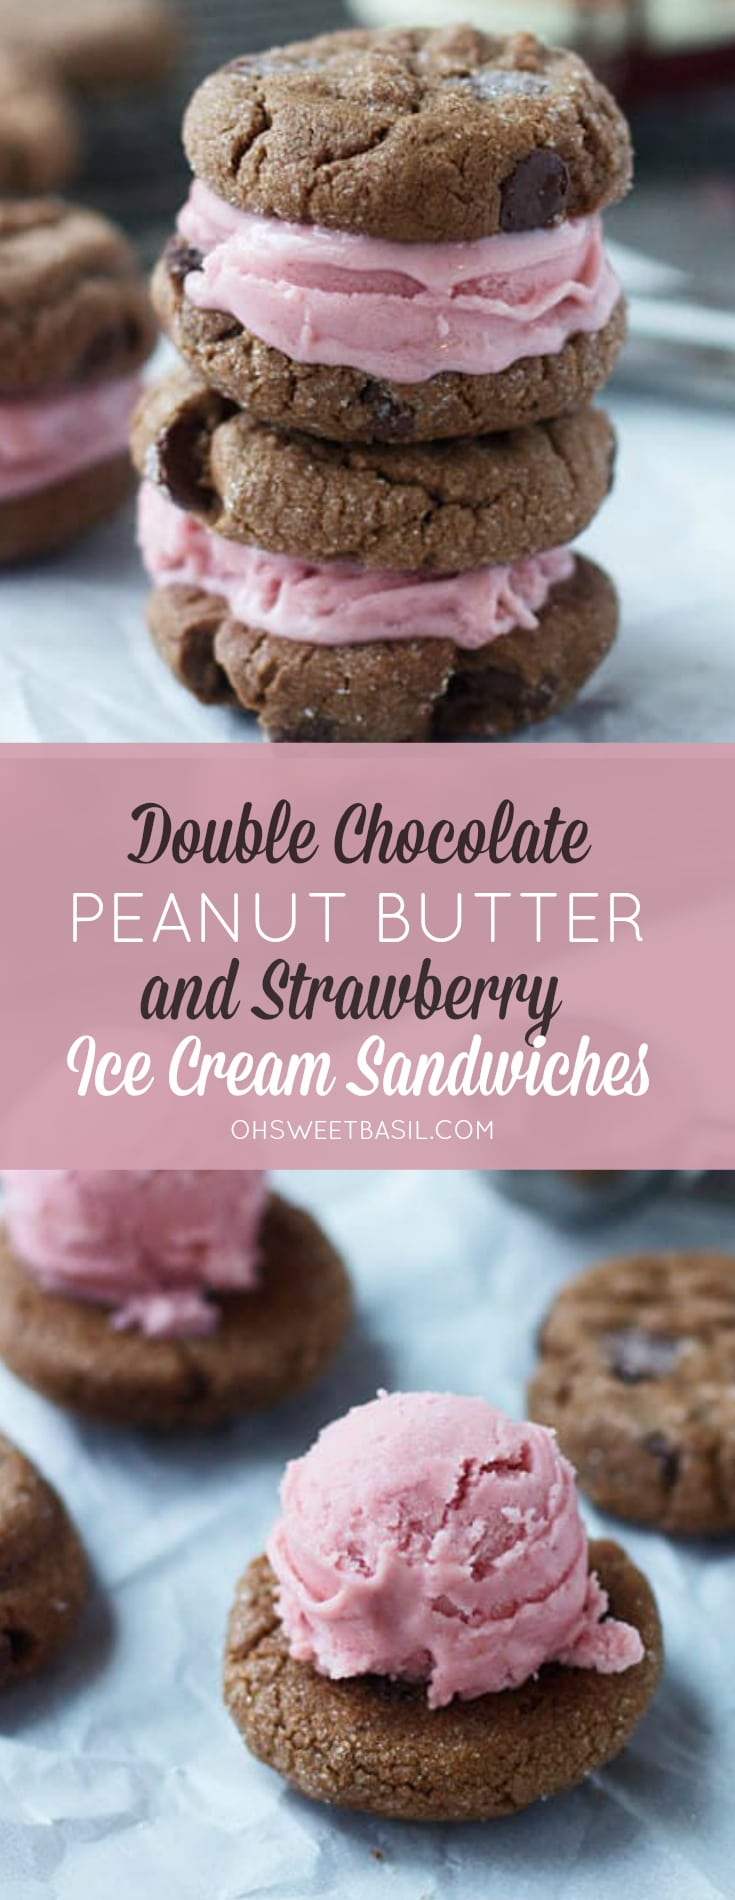 A stack of Double Chocolate Peanut Butter and Strawberry Ice Cream Sandwiches